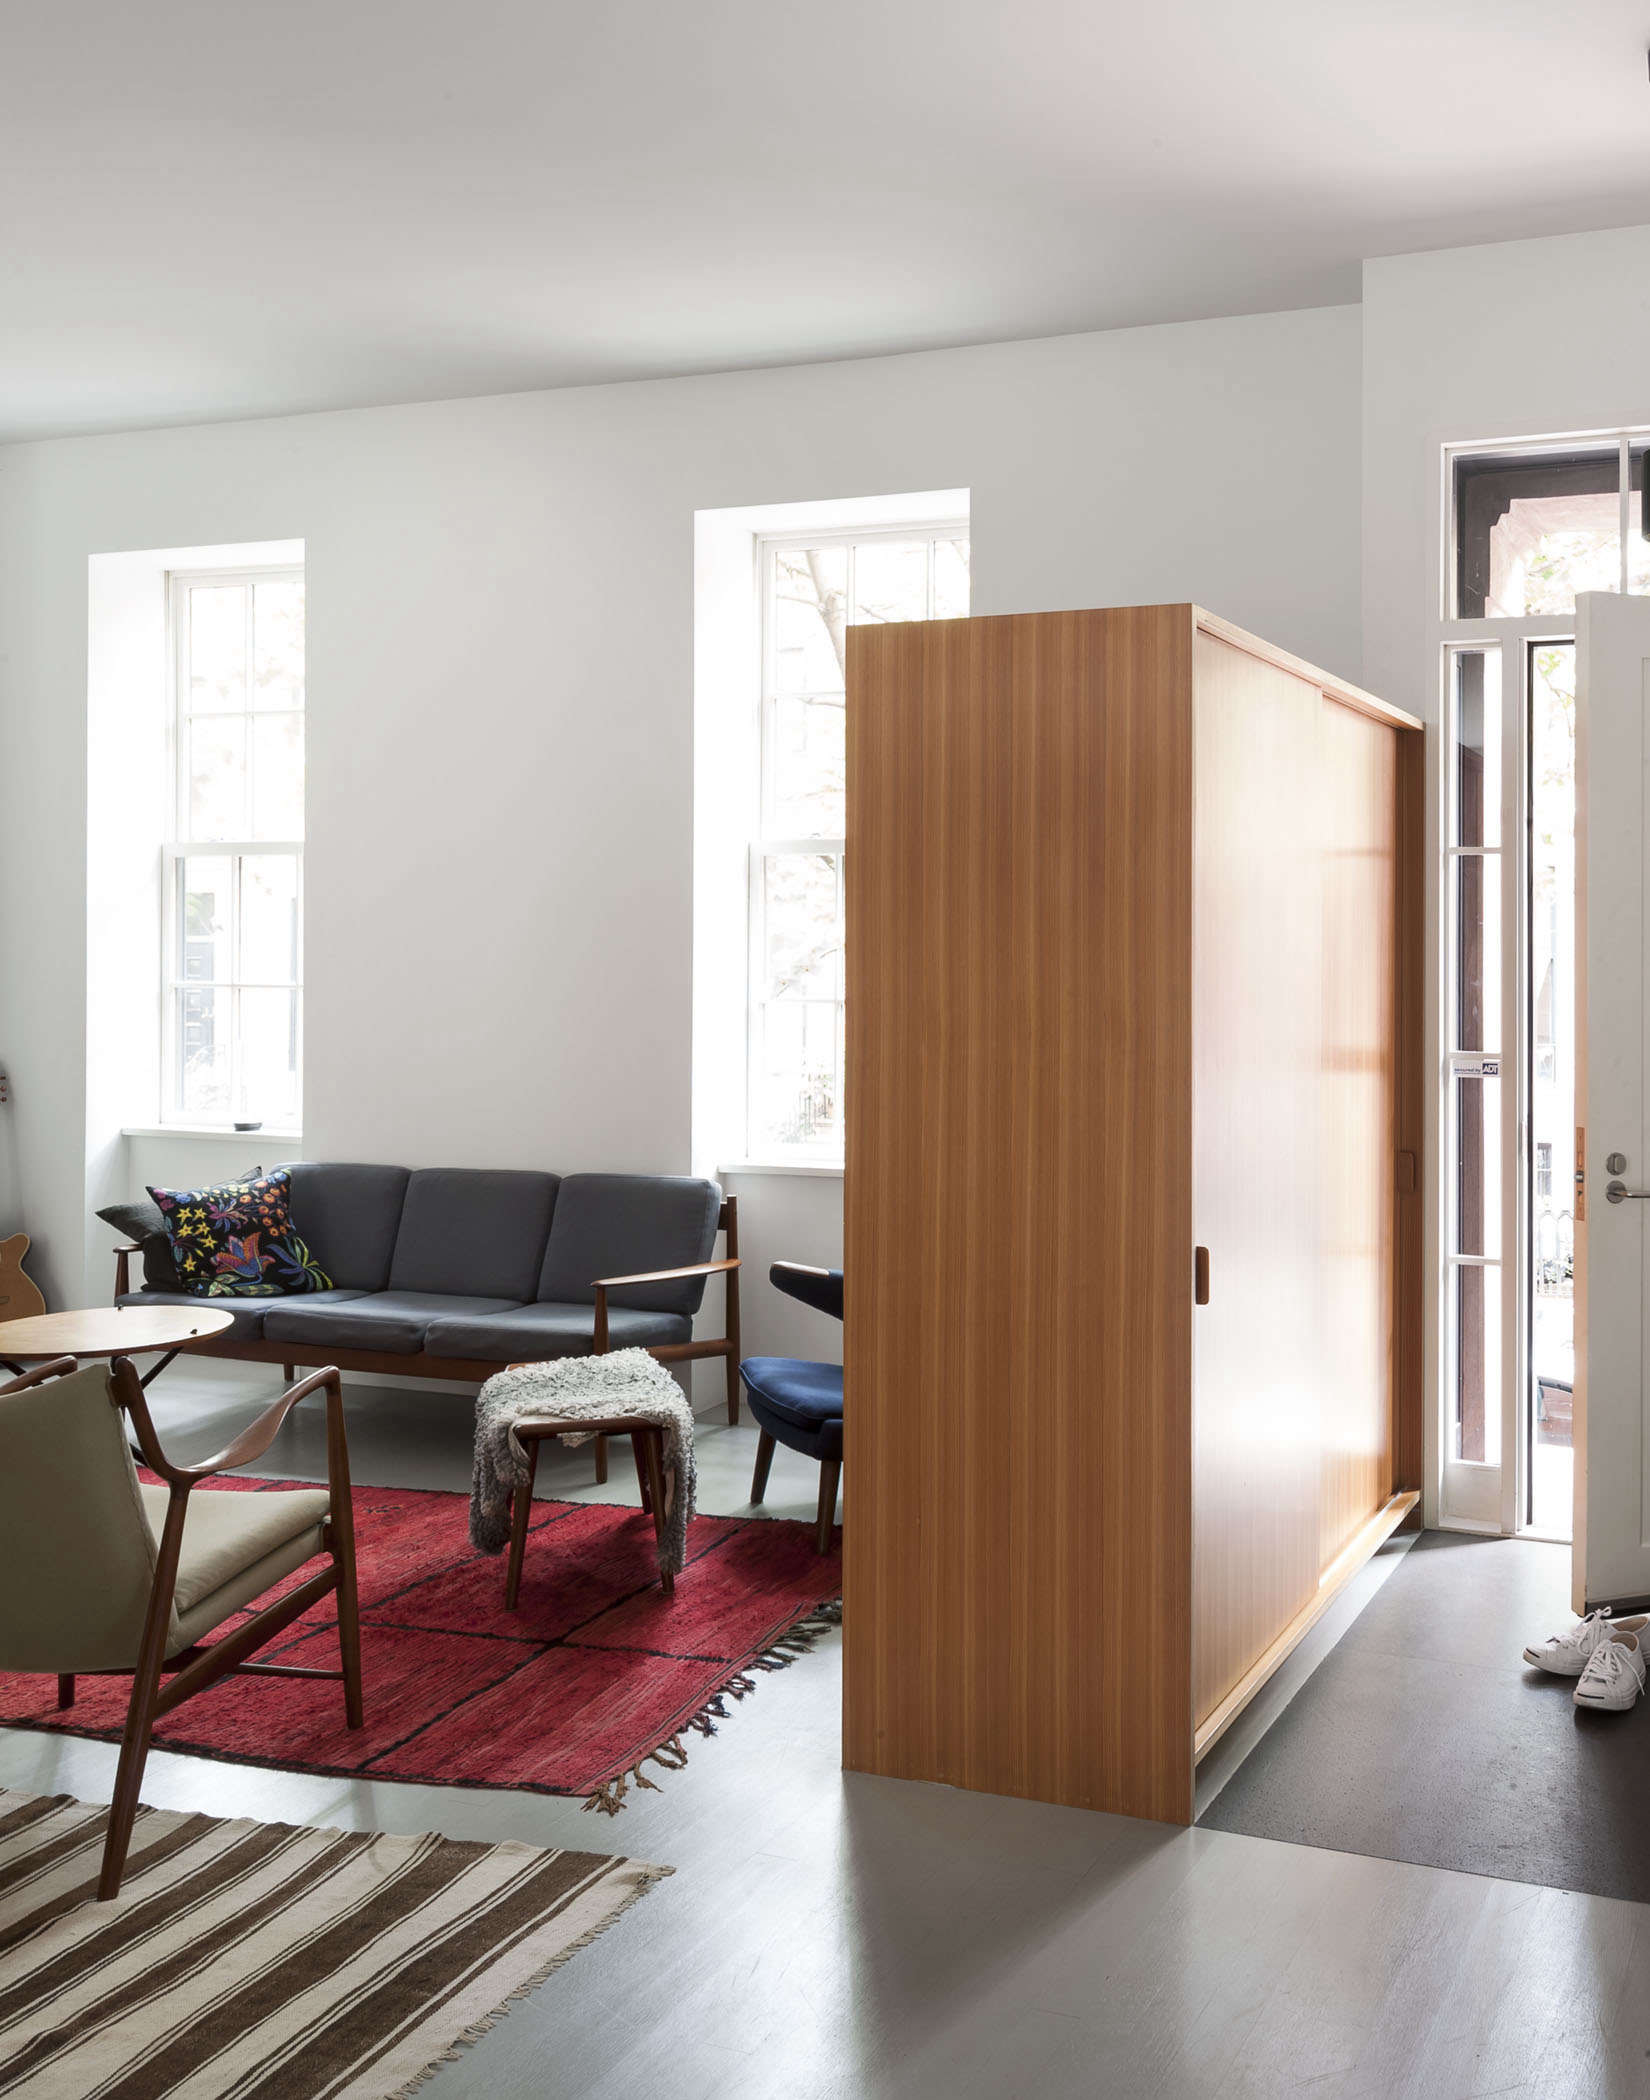 Nordic Beauty: A Brooklyn Townhouse Reinvented With Styleu2014and Restraint